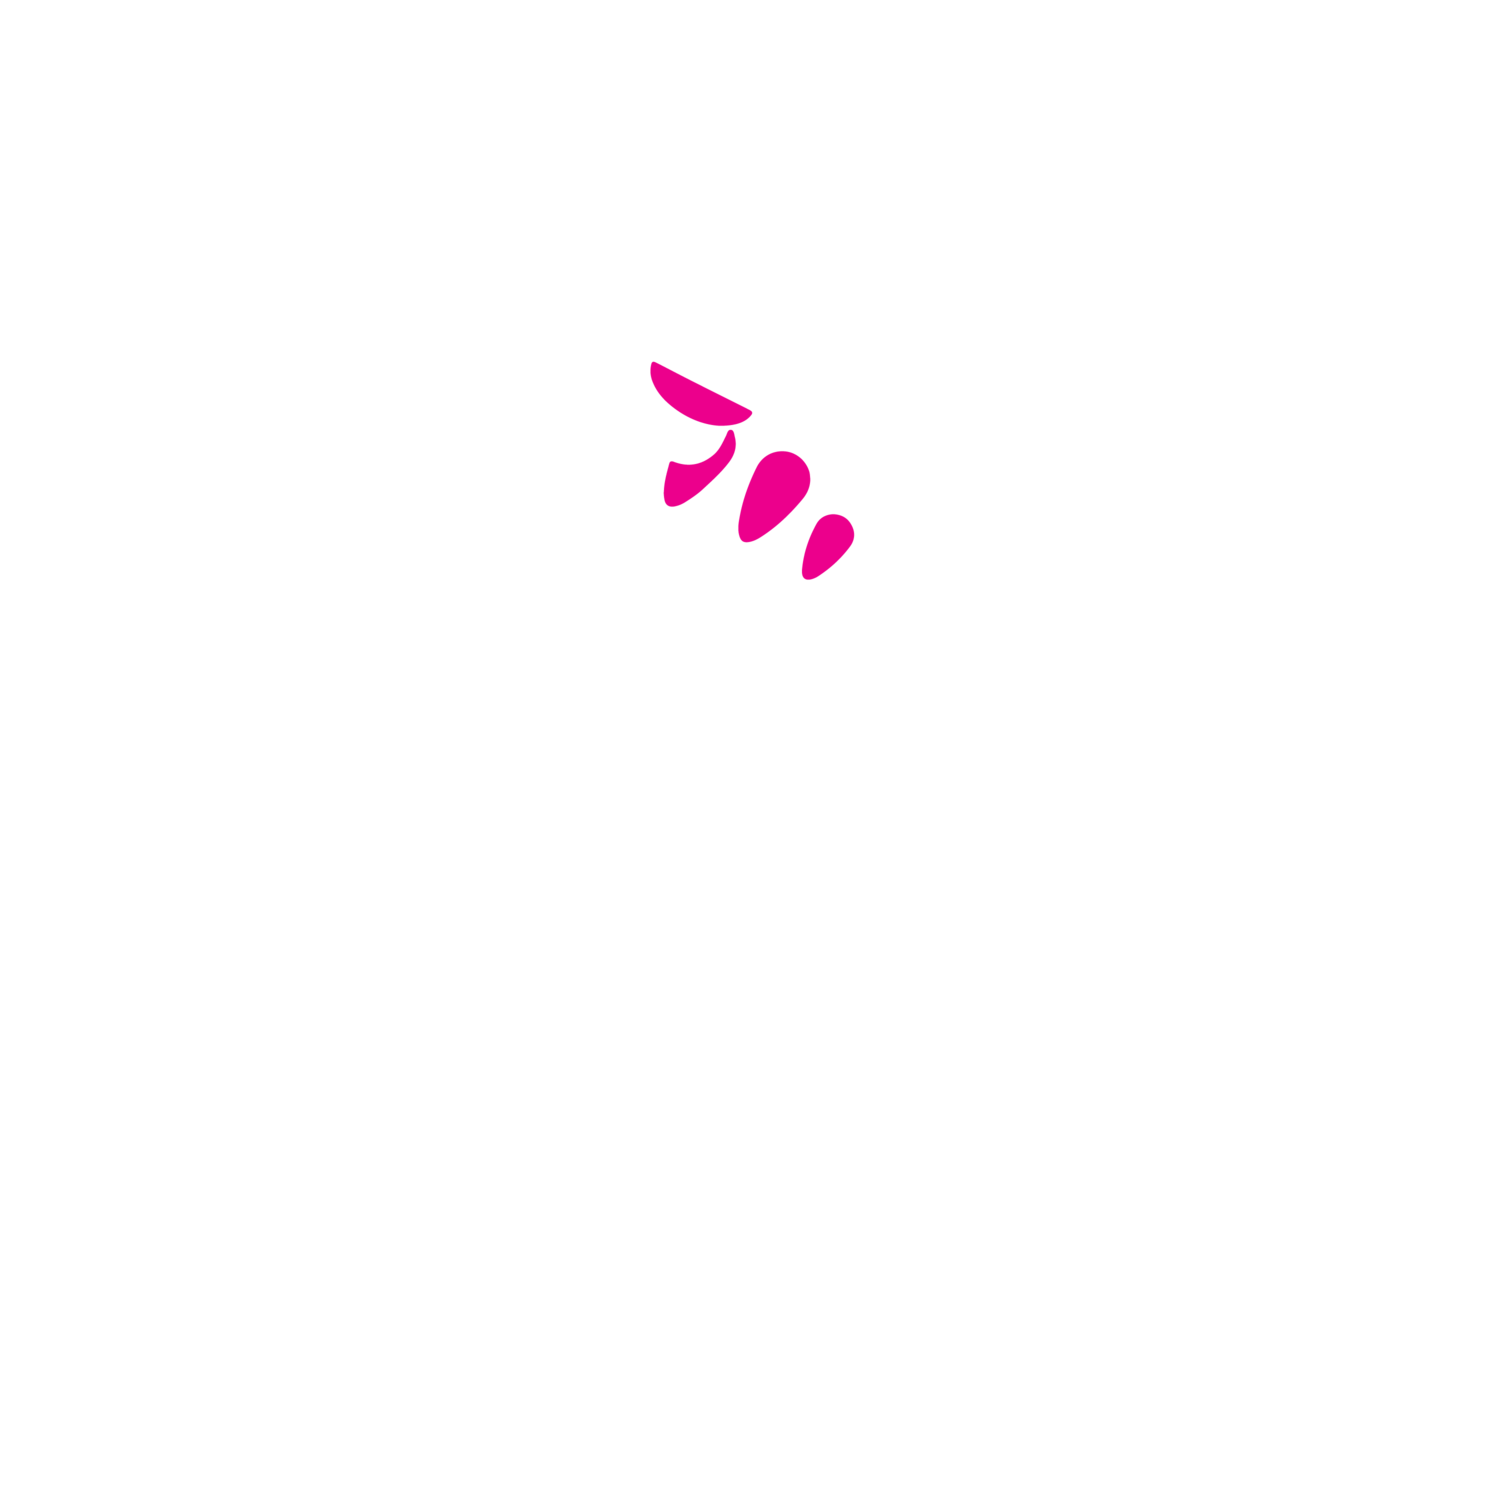 Fund Female Founders